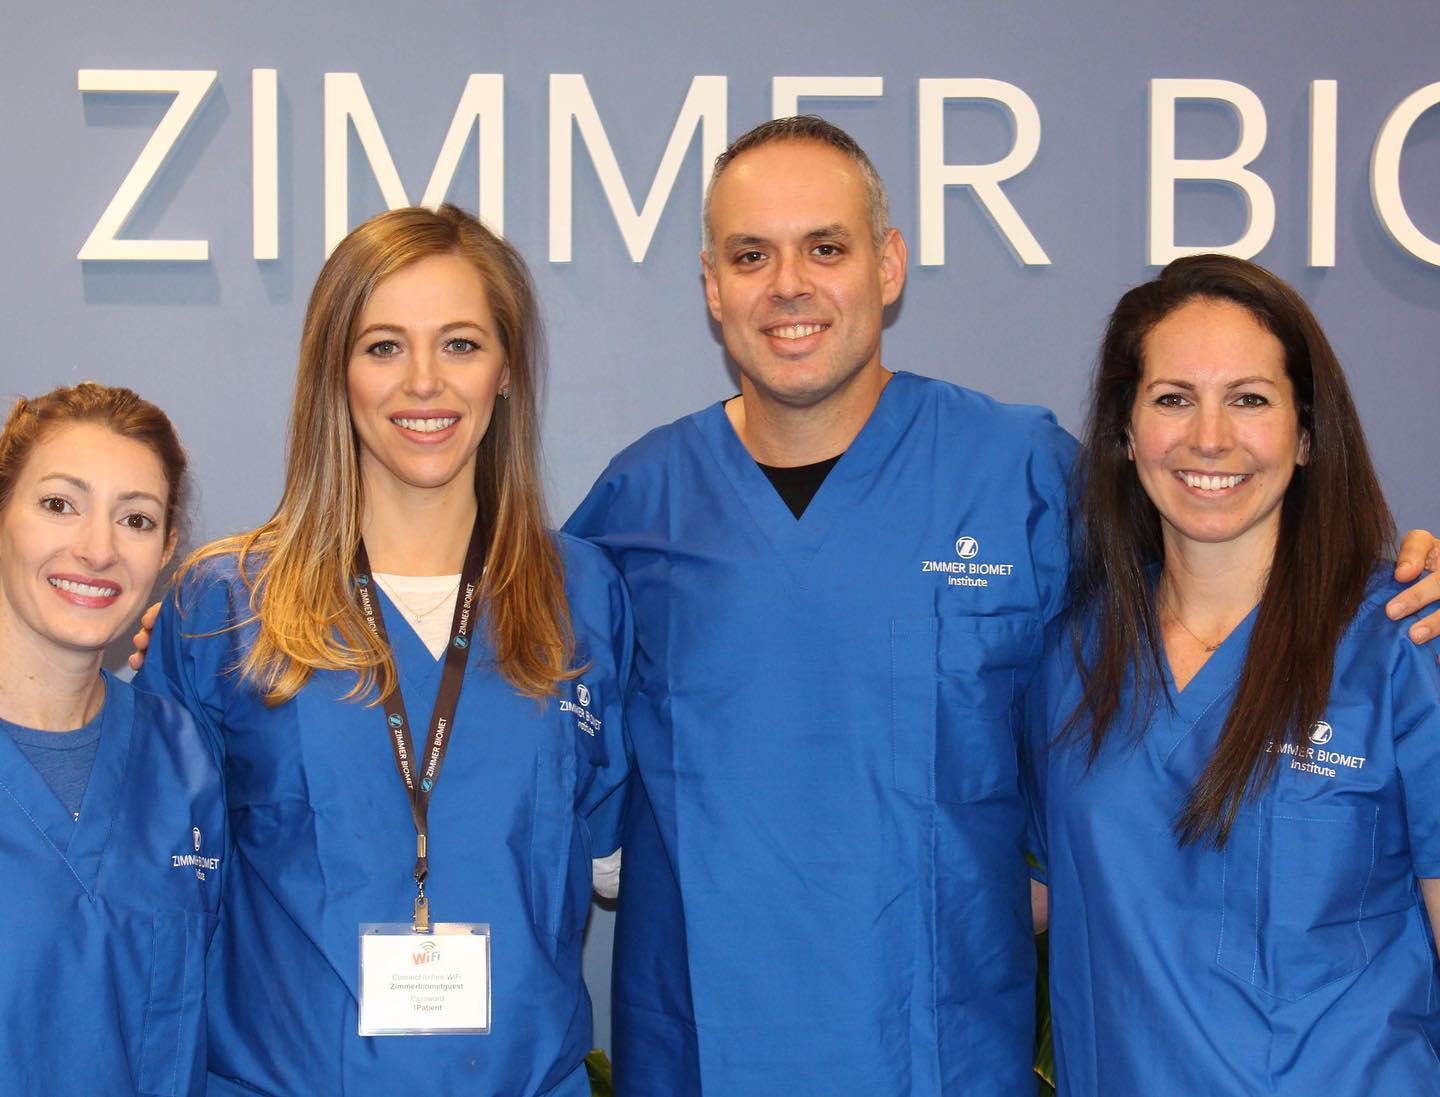 Drs. Hartman and Morrow spent the weekend continuing their education with local periodontist, Dr. Carlos, in a hands-on full mouth rehabilitation course at @zimmerbiometdental in CA! Does your dentist continuously update their dental education? The requi